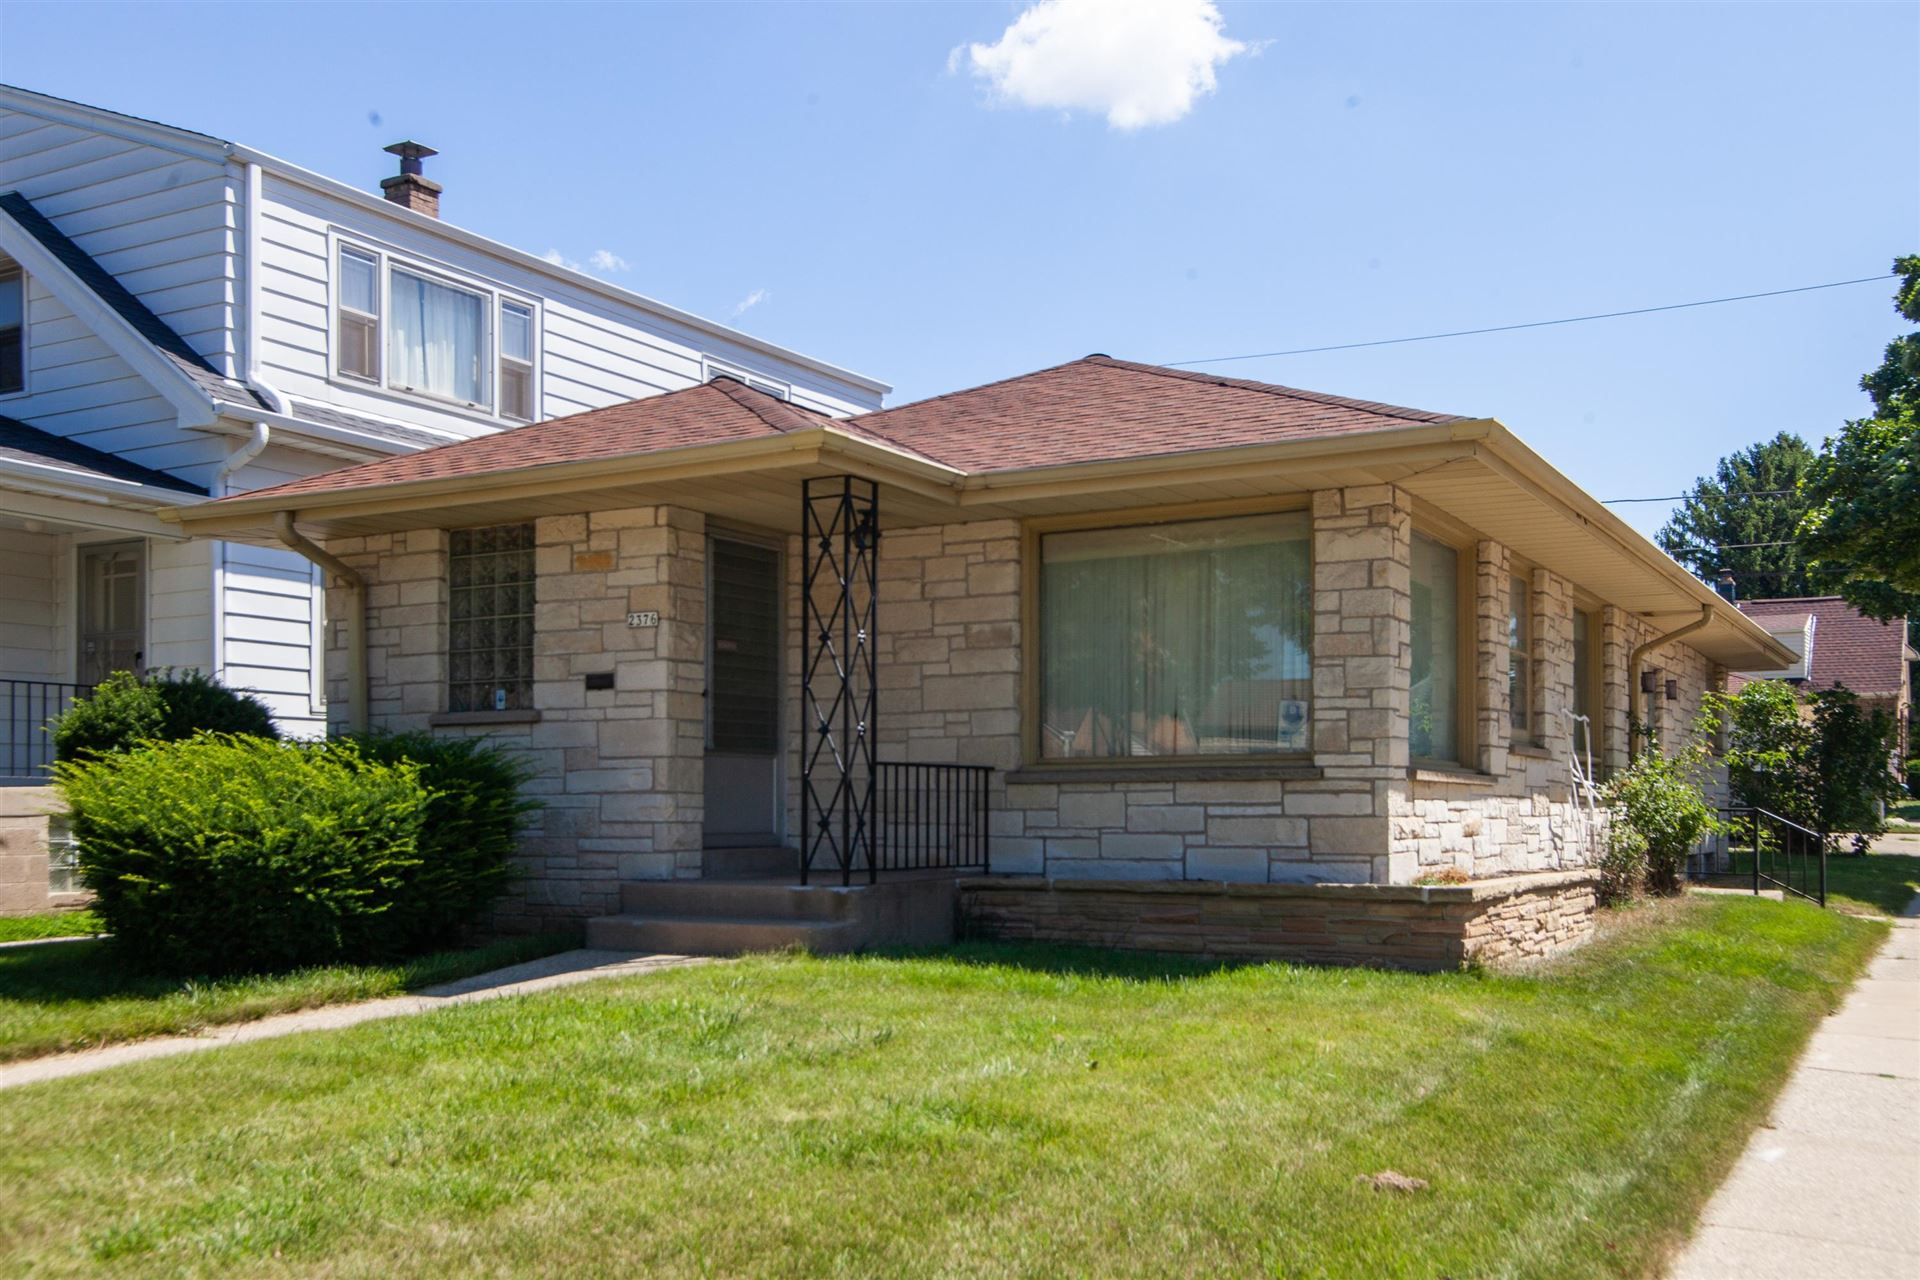 2376 S 77th St, West Allis, WI 53219 - #: 1680884